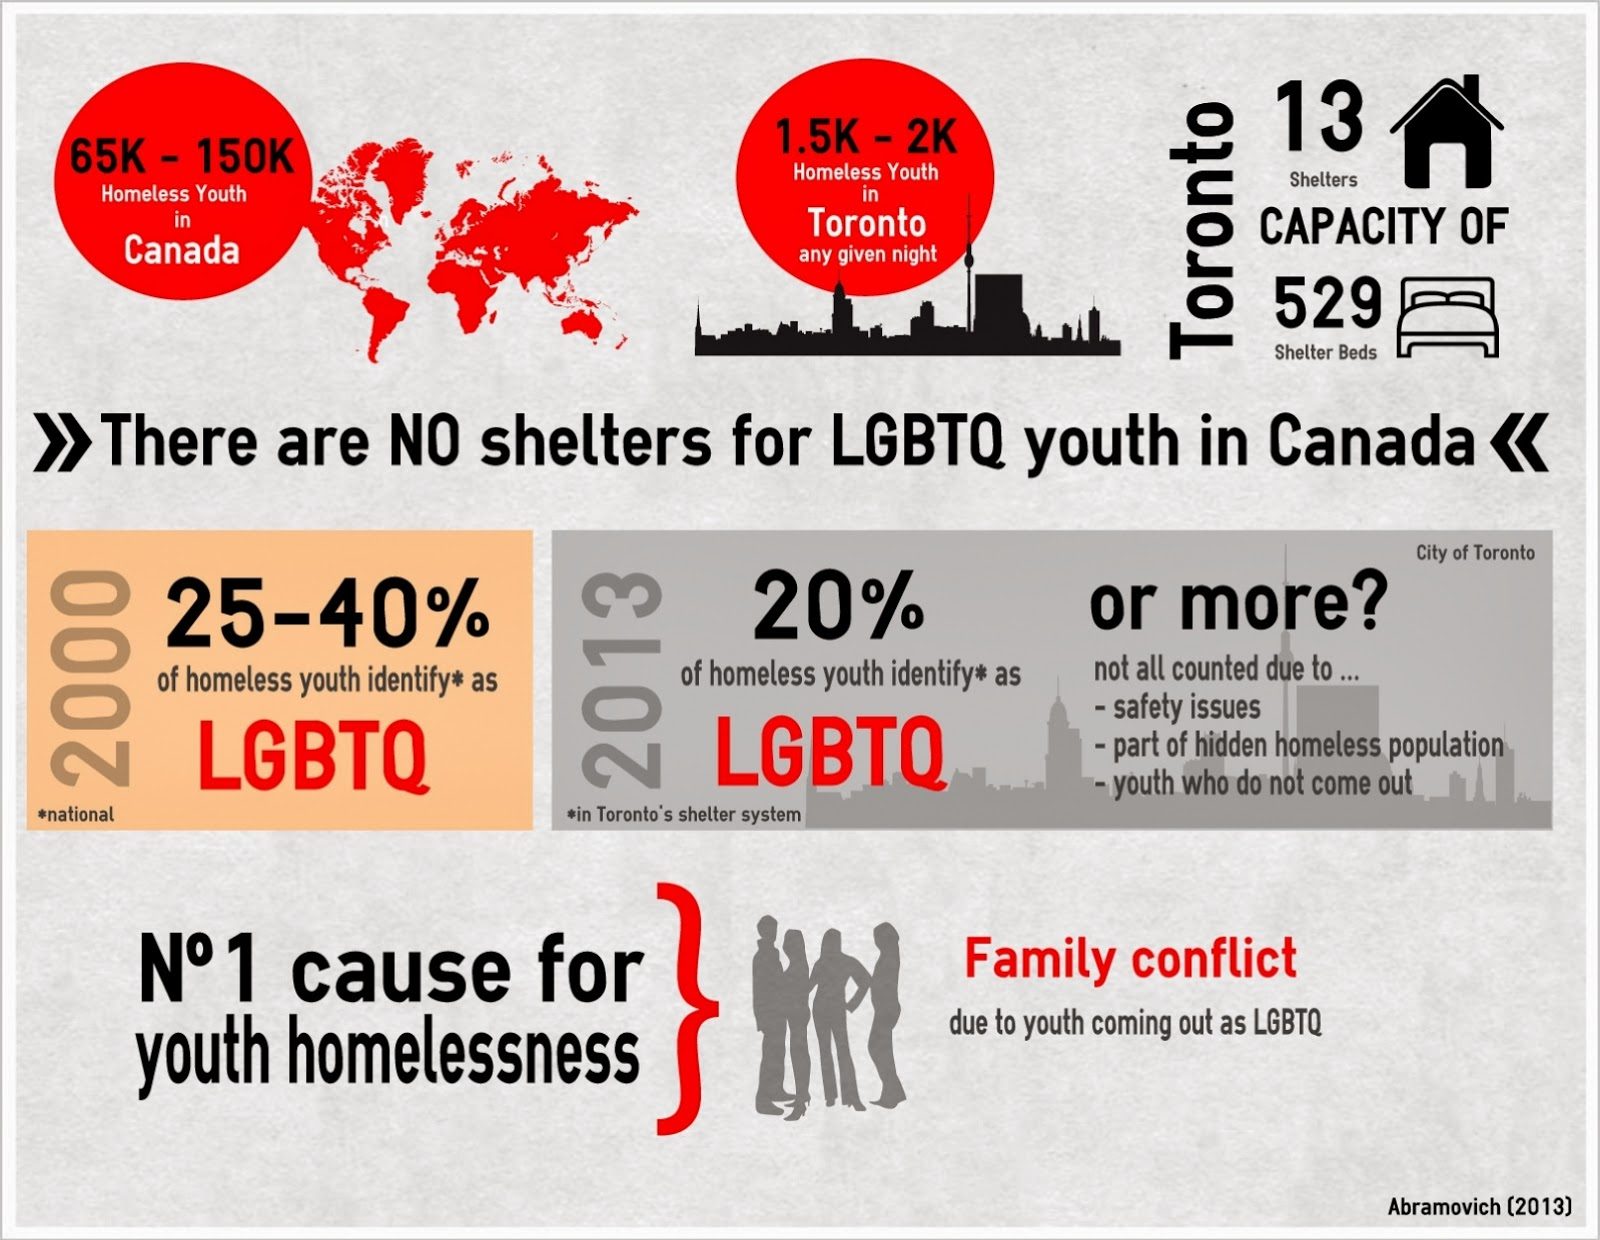 essays on homeless youth in canada Read this full essay on the rise in youth homelessness in canada today in  canada, a rise in youth homelessness is being observed across the country.